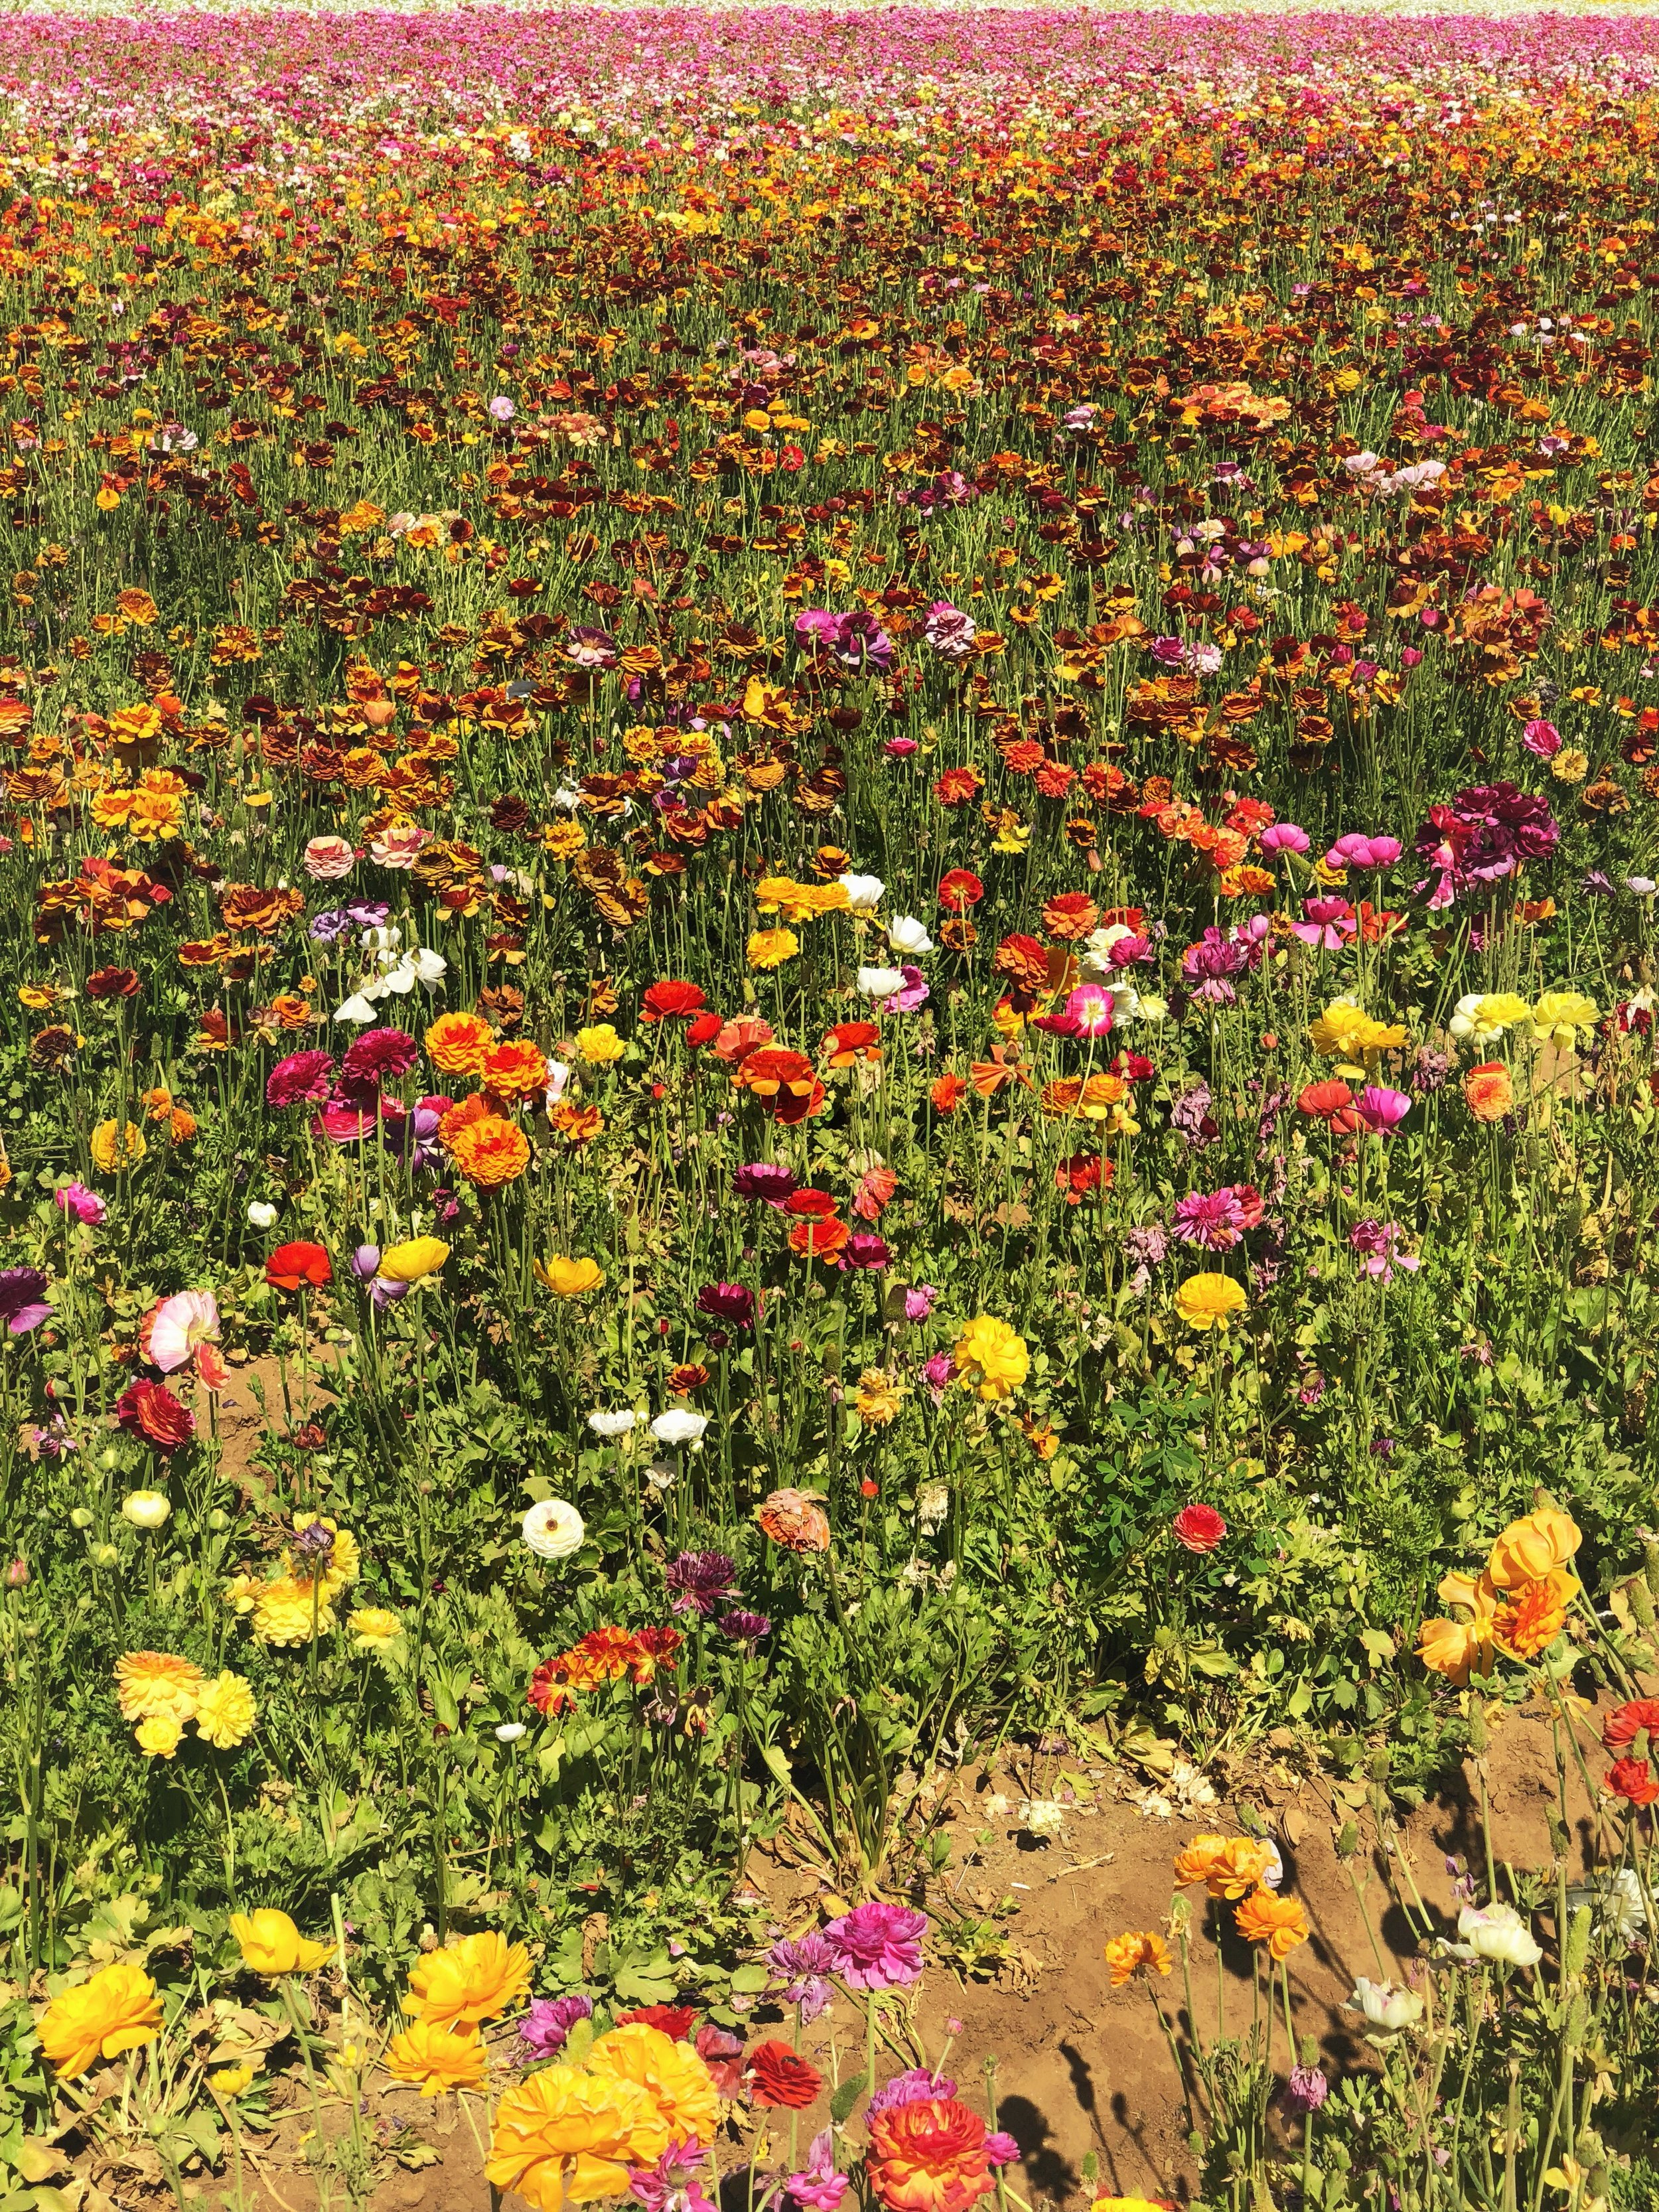 Where we spend our Mother's Day - the Carlsbad Flower Fields, so stunningly beautiful!